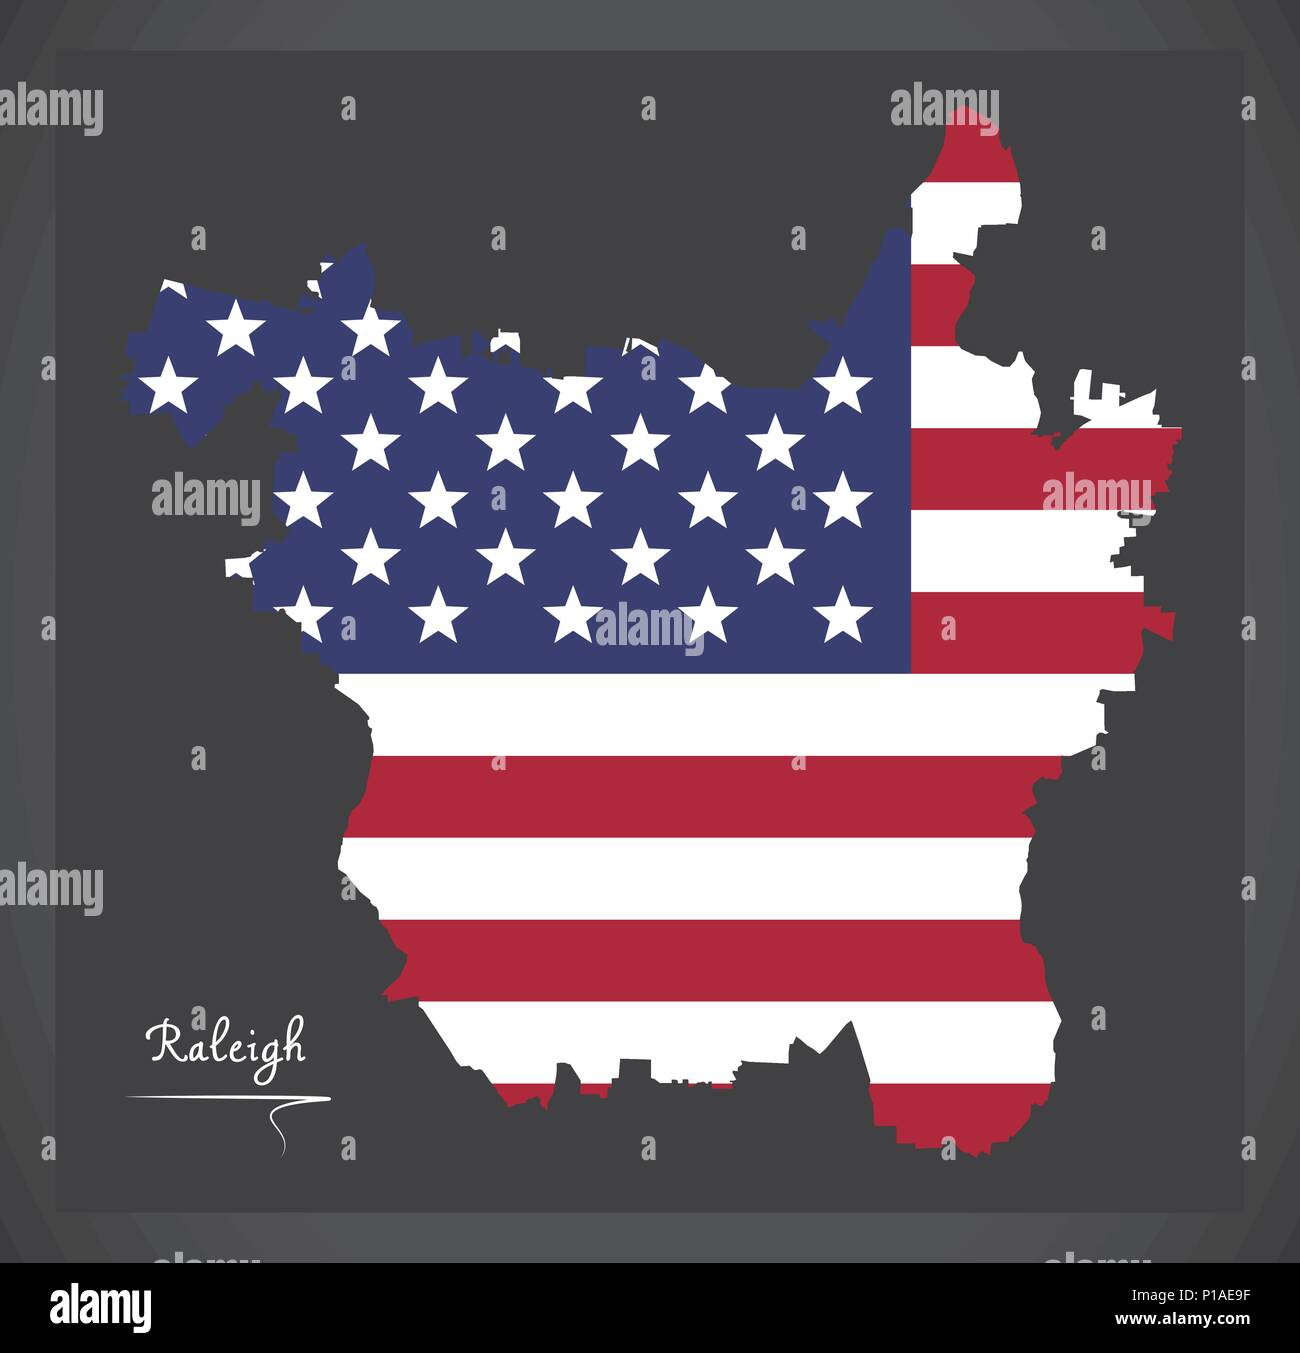 Raleigh North Carolina Map With American National Flag Illustration - Raleigh-nc-on-us-map